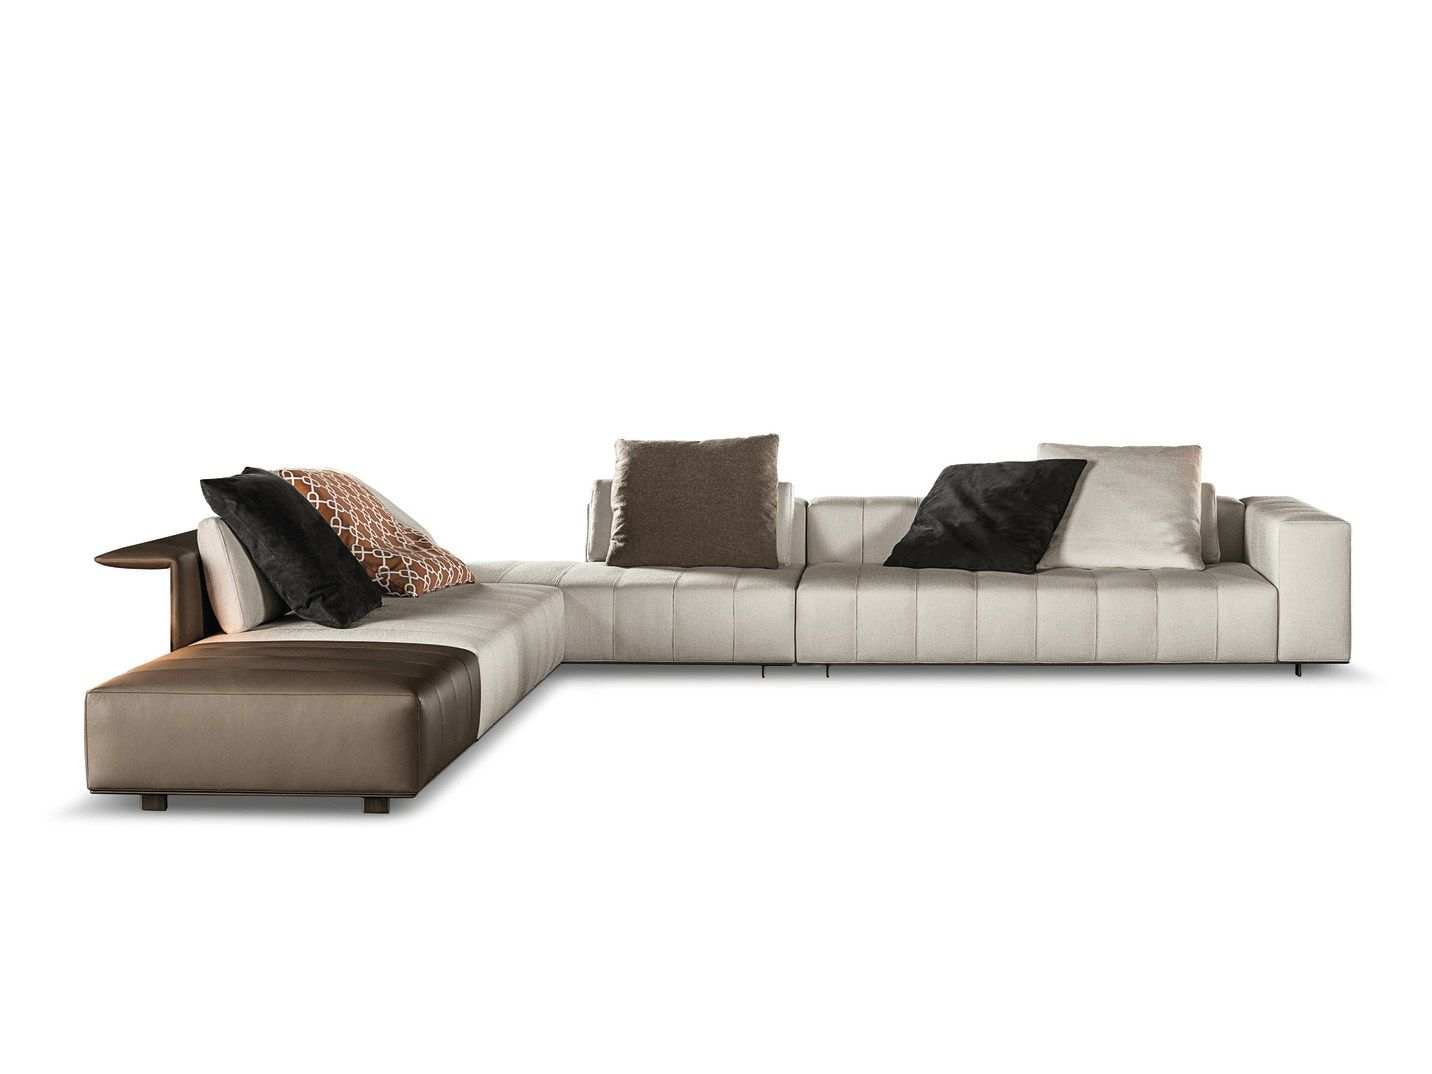 Download The Catalogue And Request Prices Of Freeman Tailor By Minotti Sofa Minotti Sofa Chaise Lounge Sofa Sofa